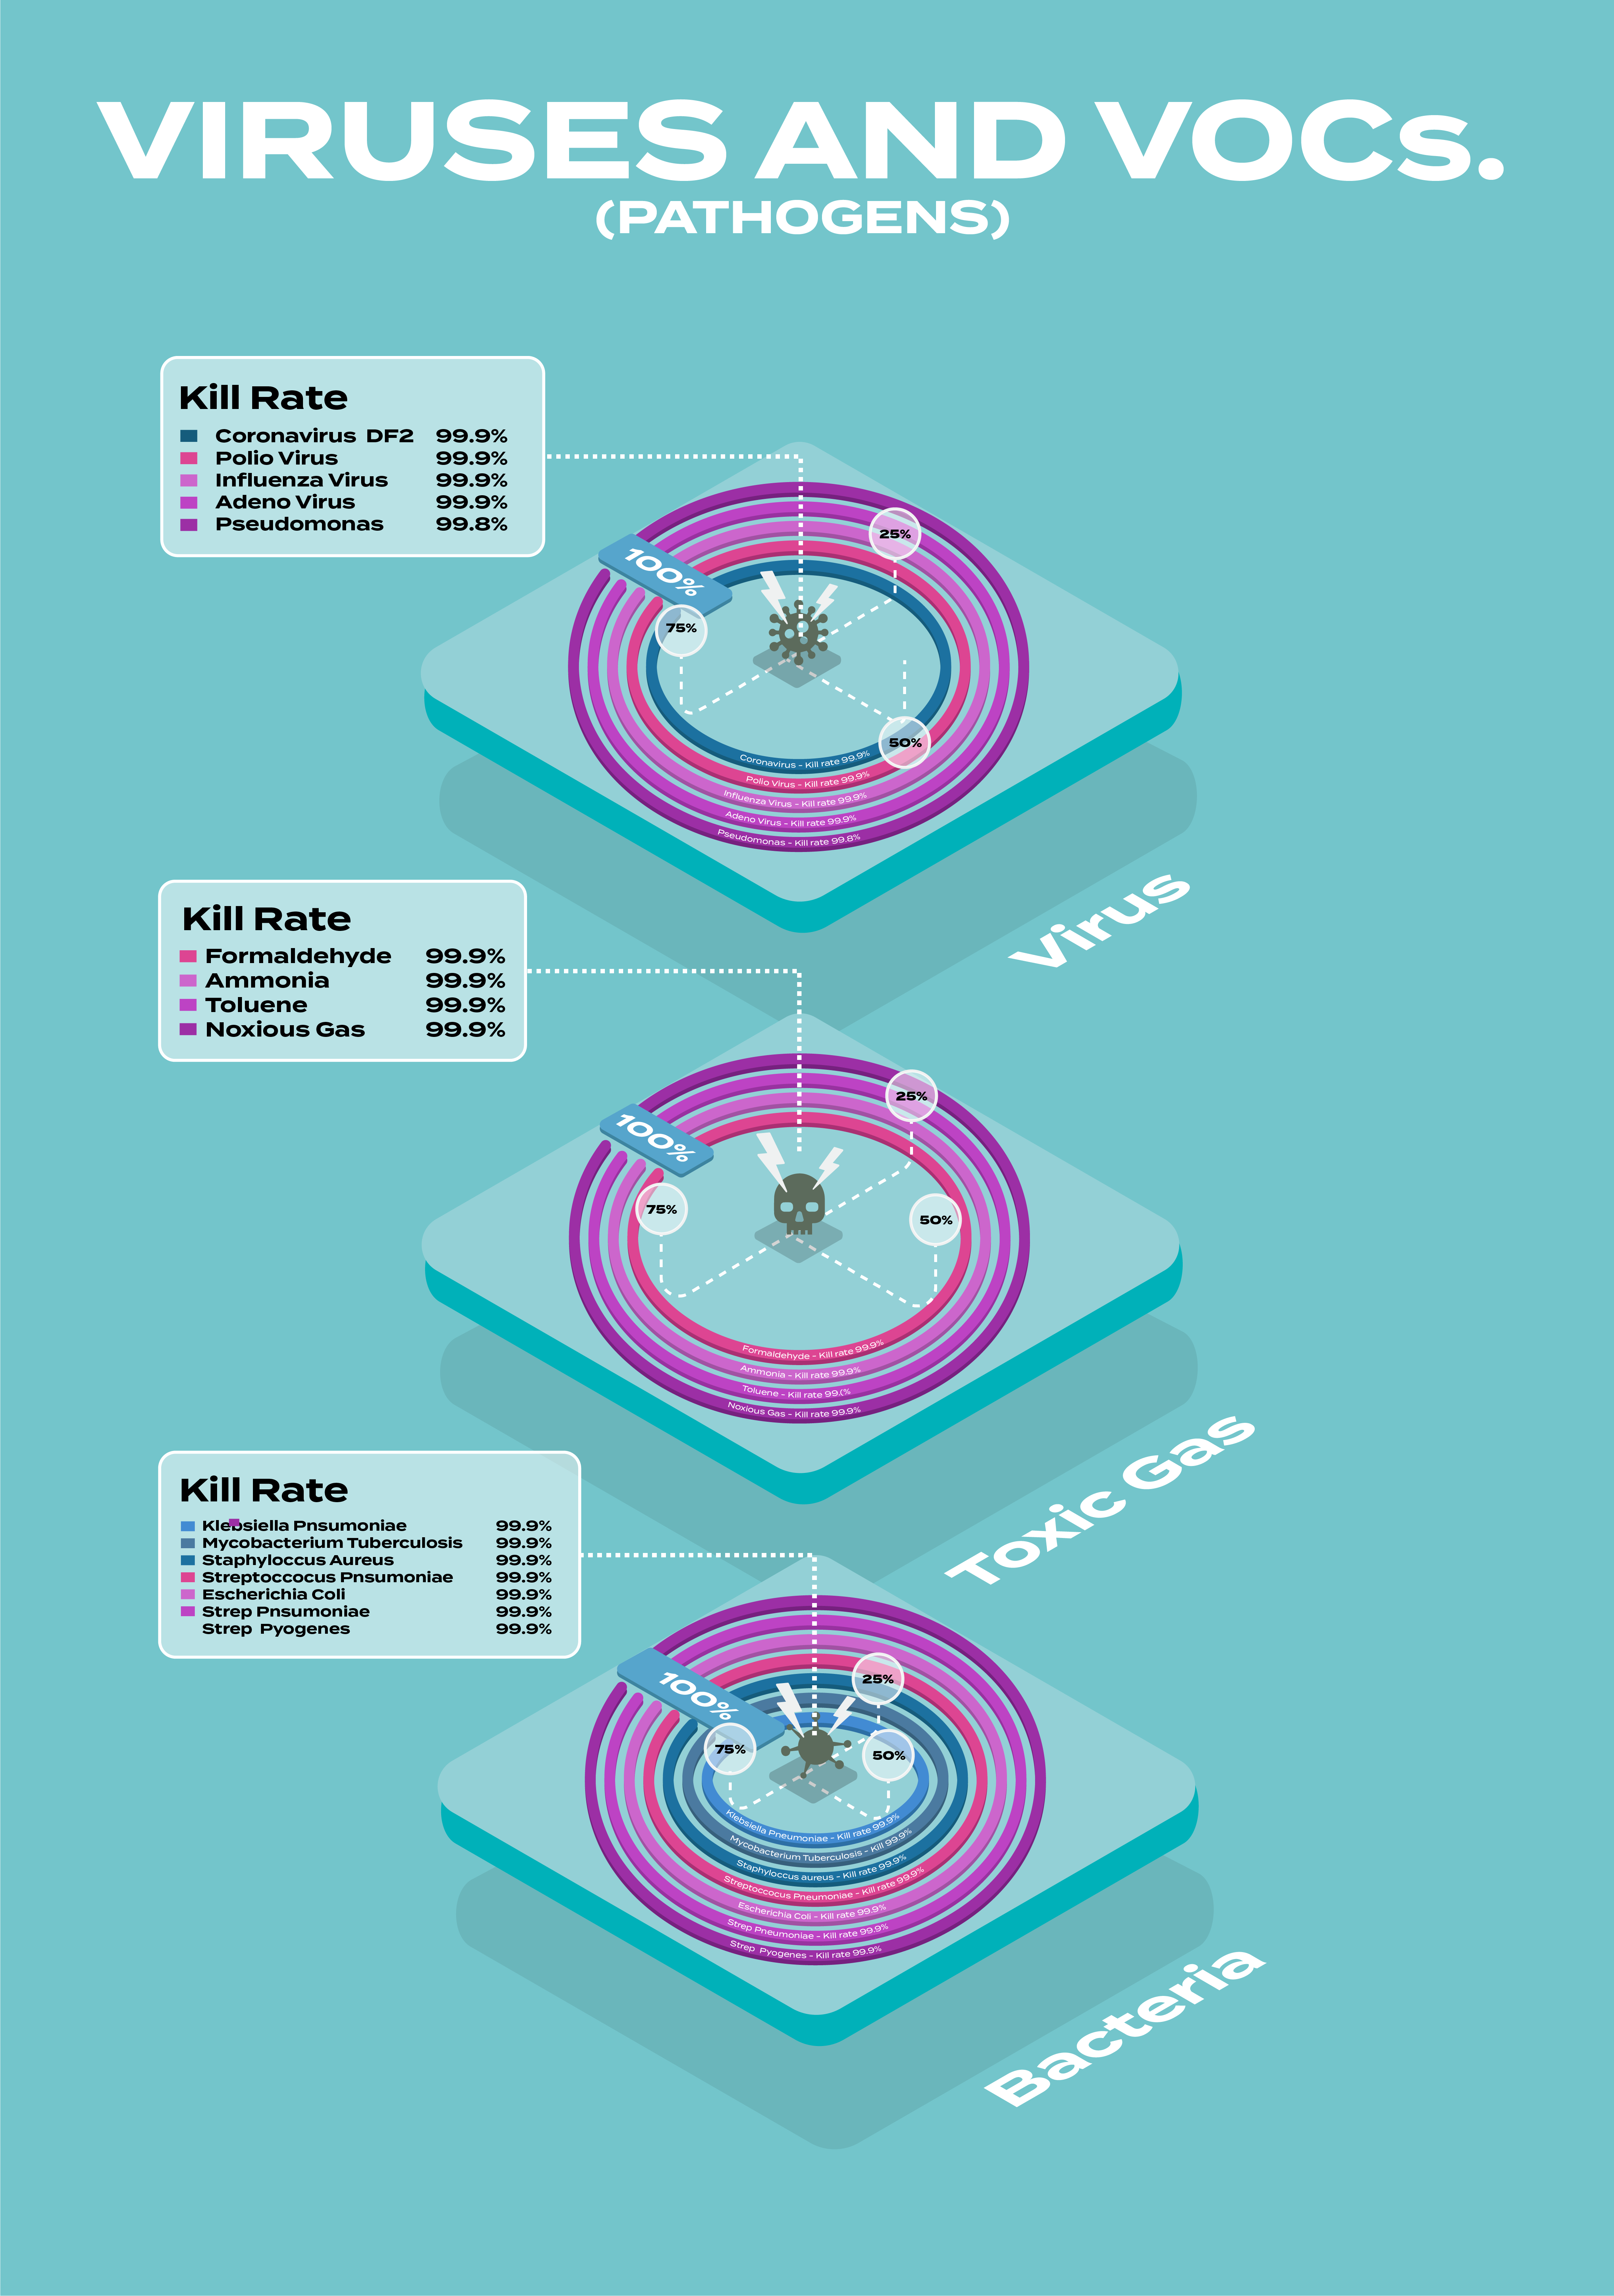 a mobile version of the infographic showing the virus killing capabilities